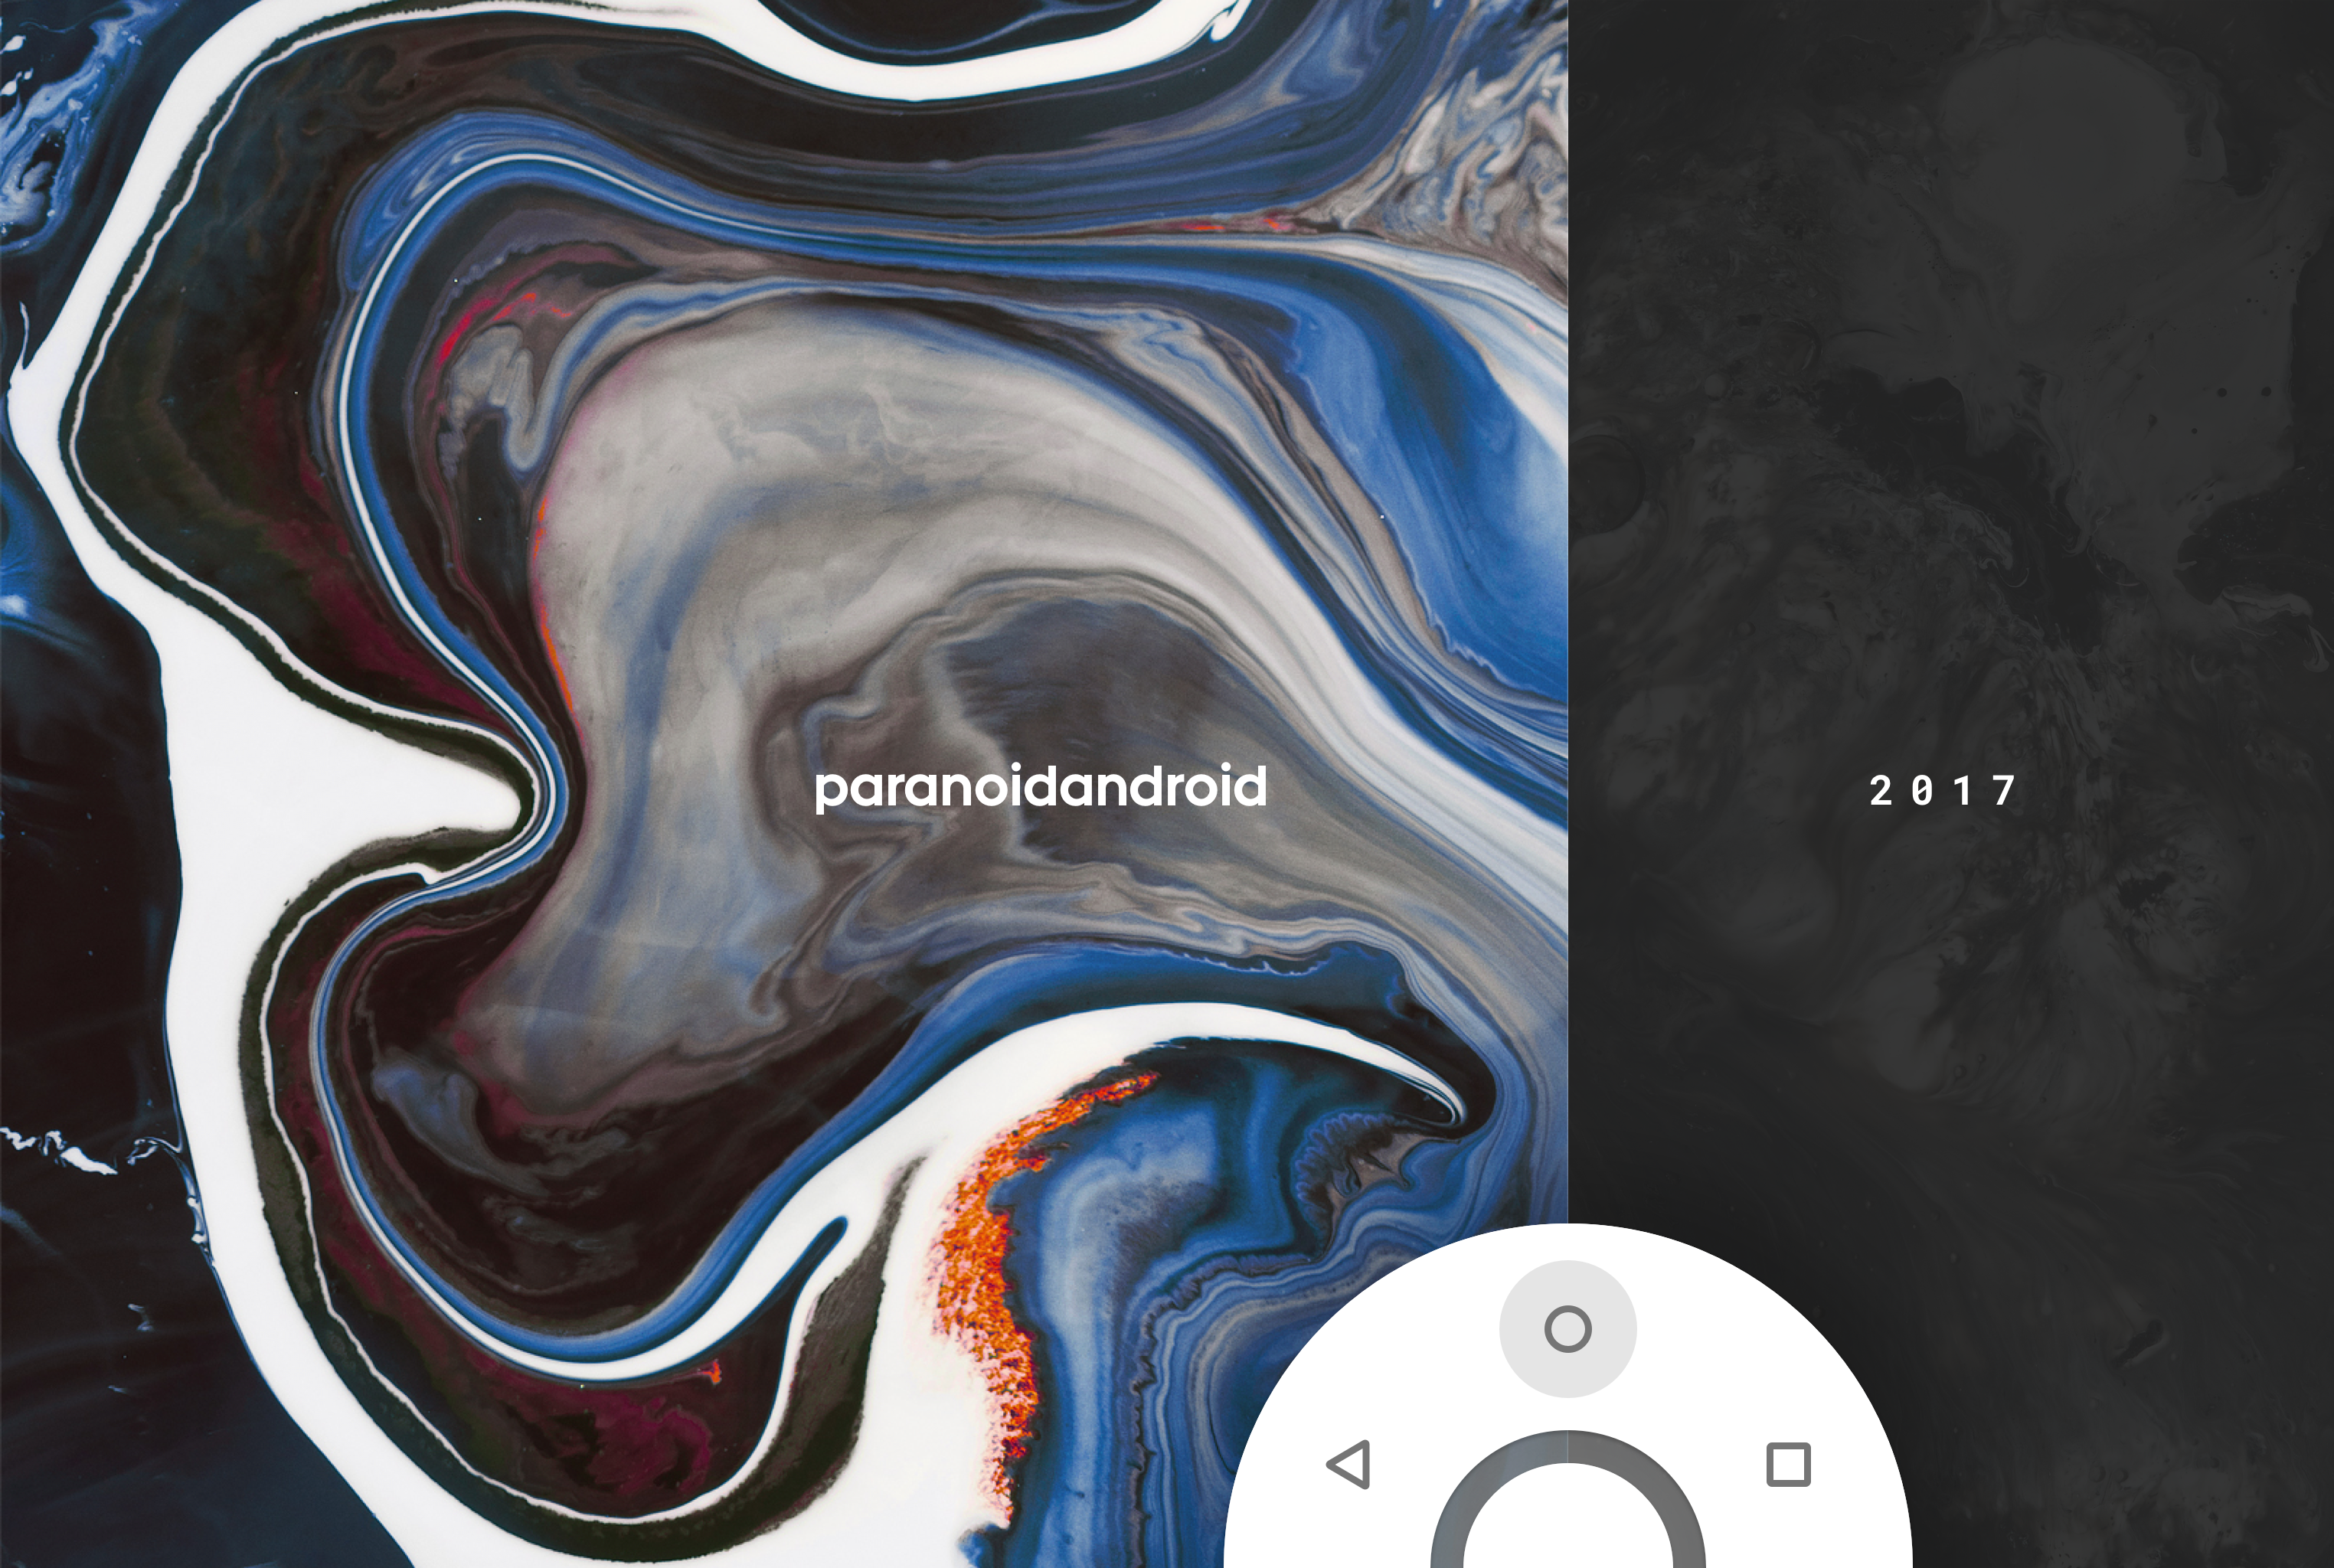 paranoid android 2017 launch